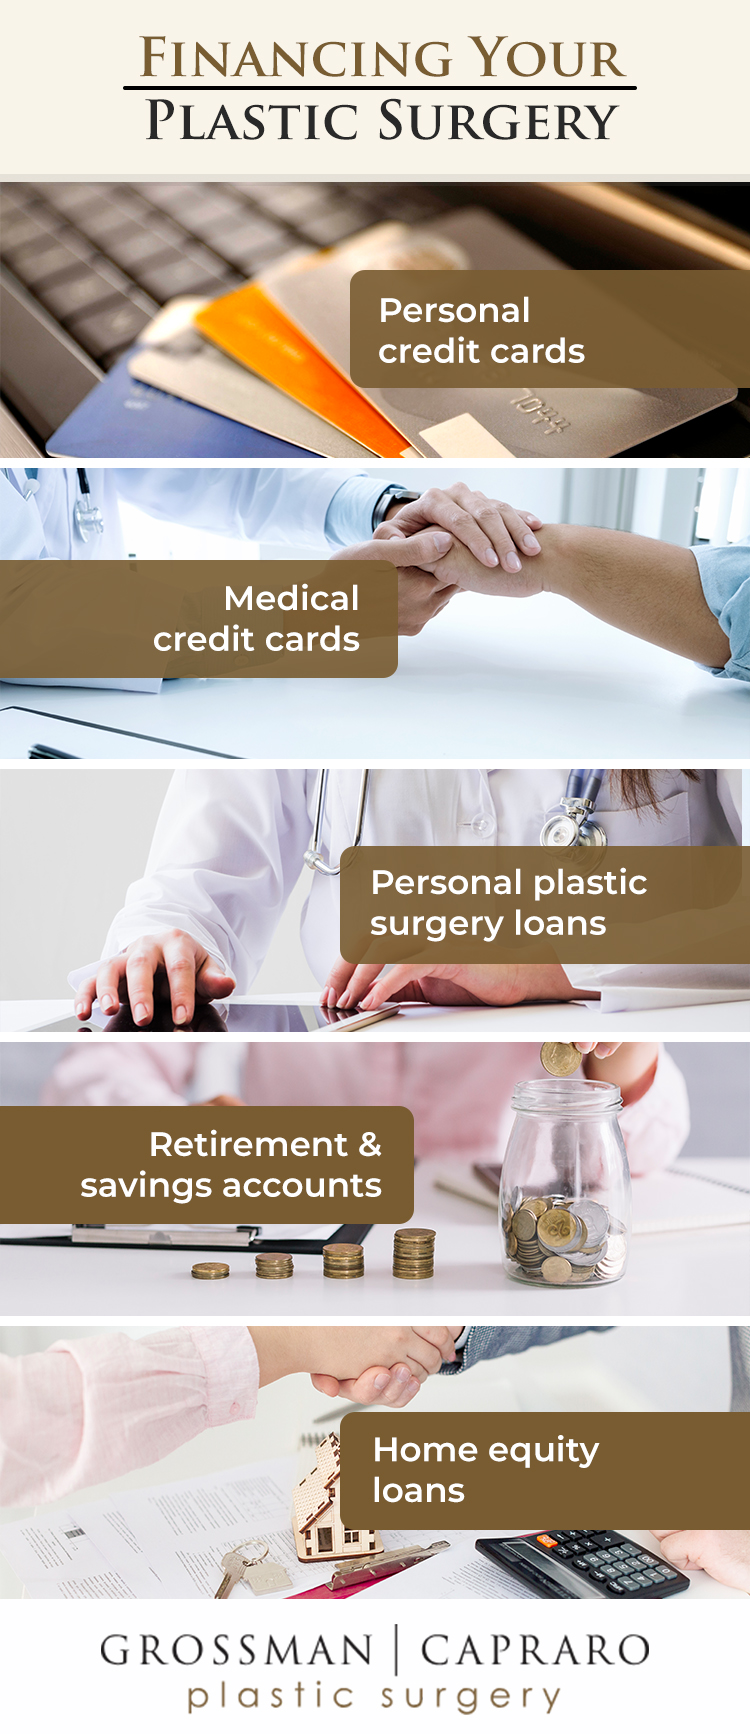 plastic surgery financing options infographic